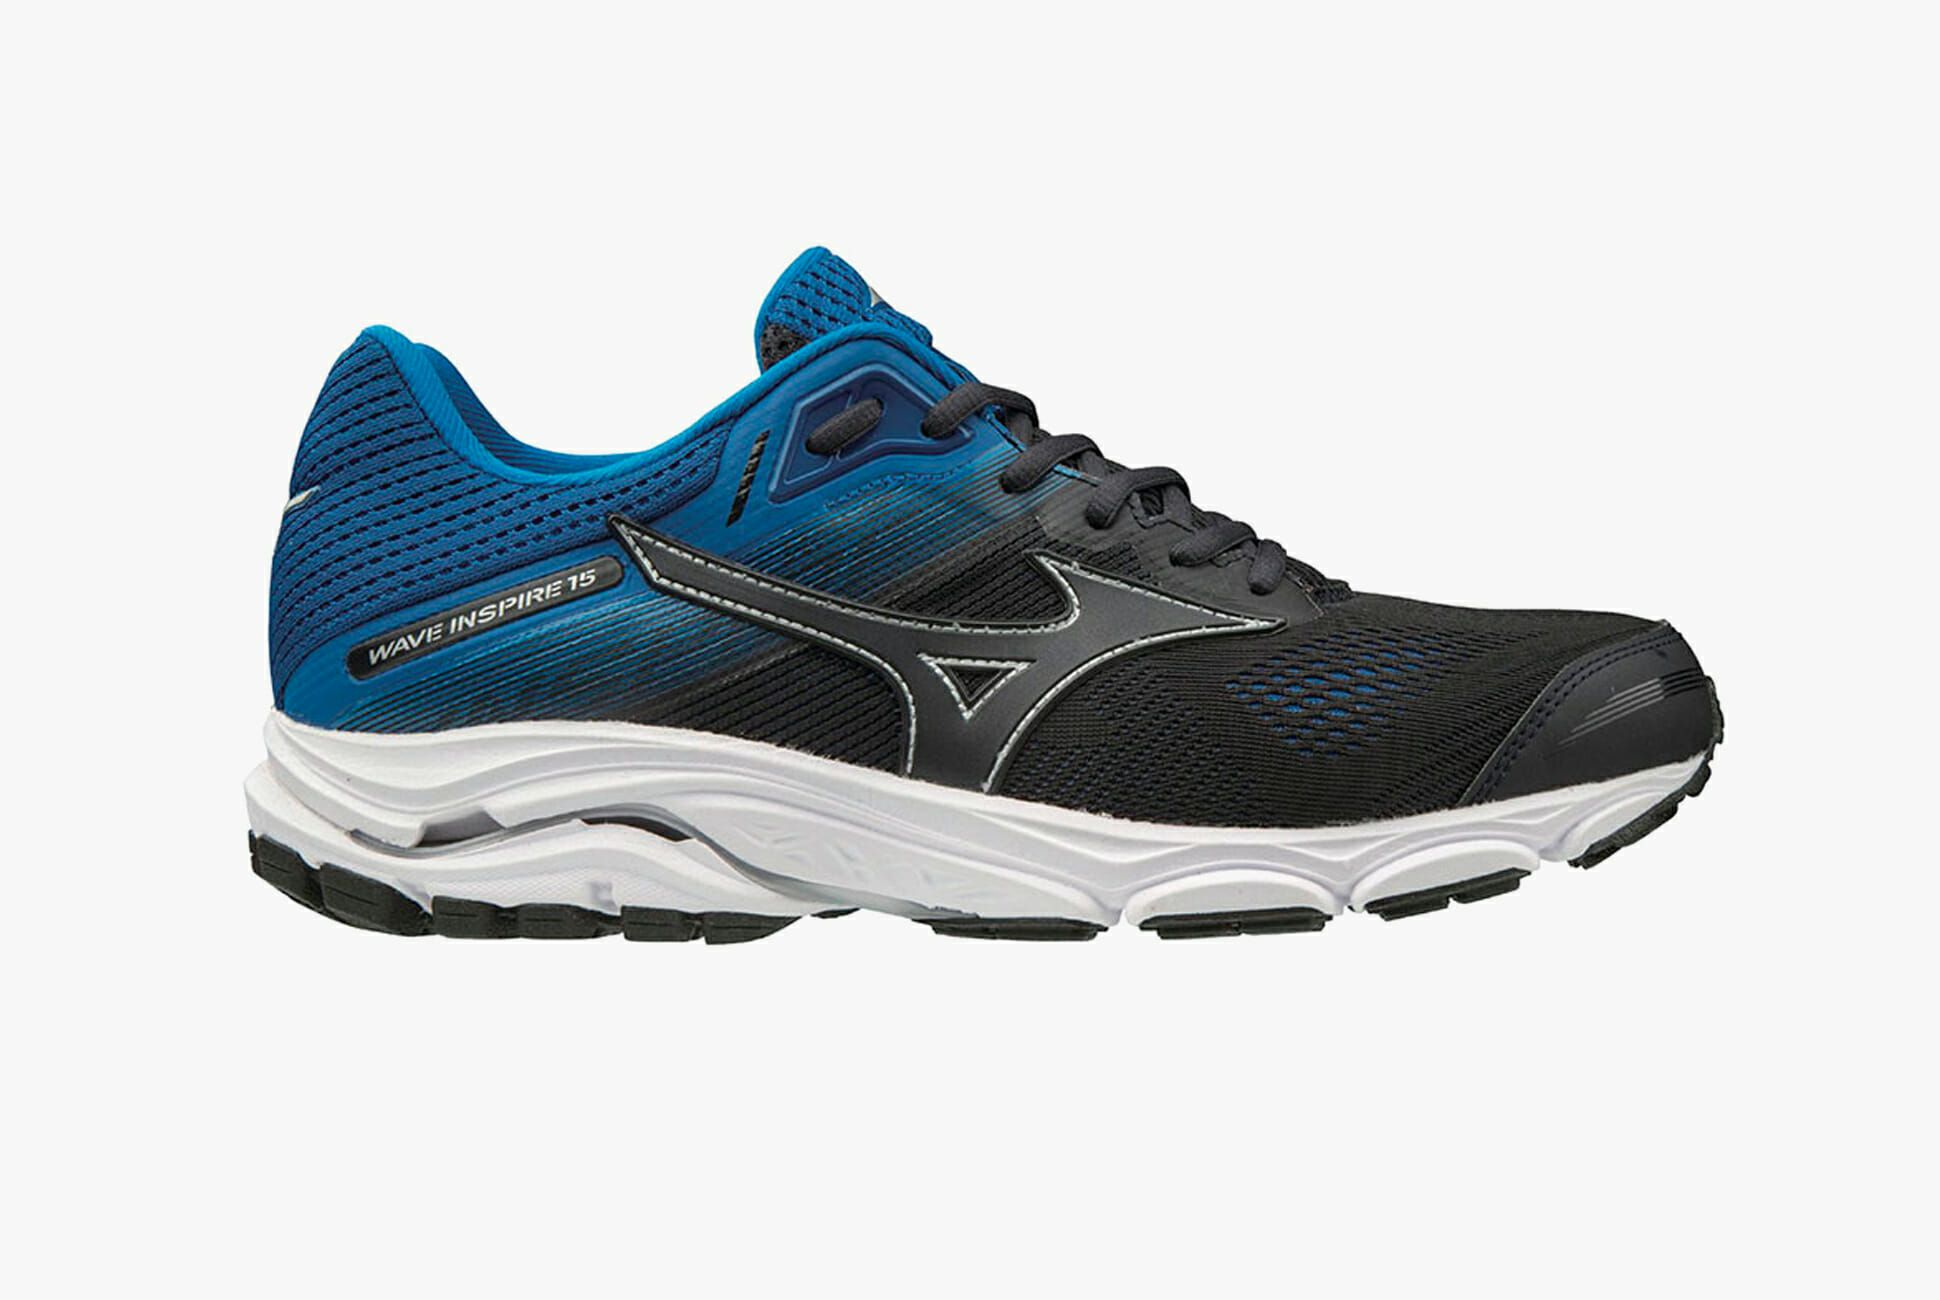 The Ultimate Stability Running Shoe Is